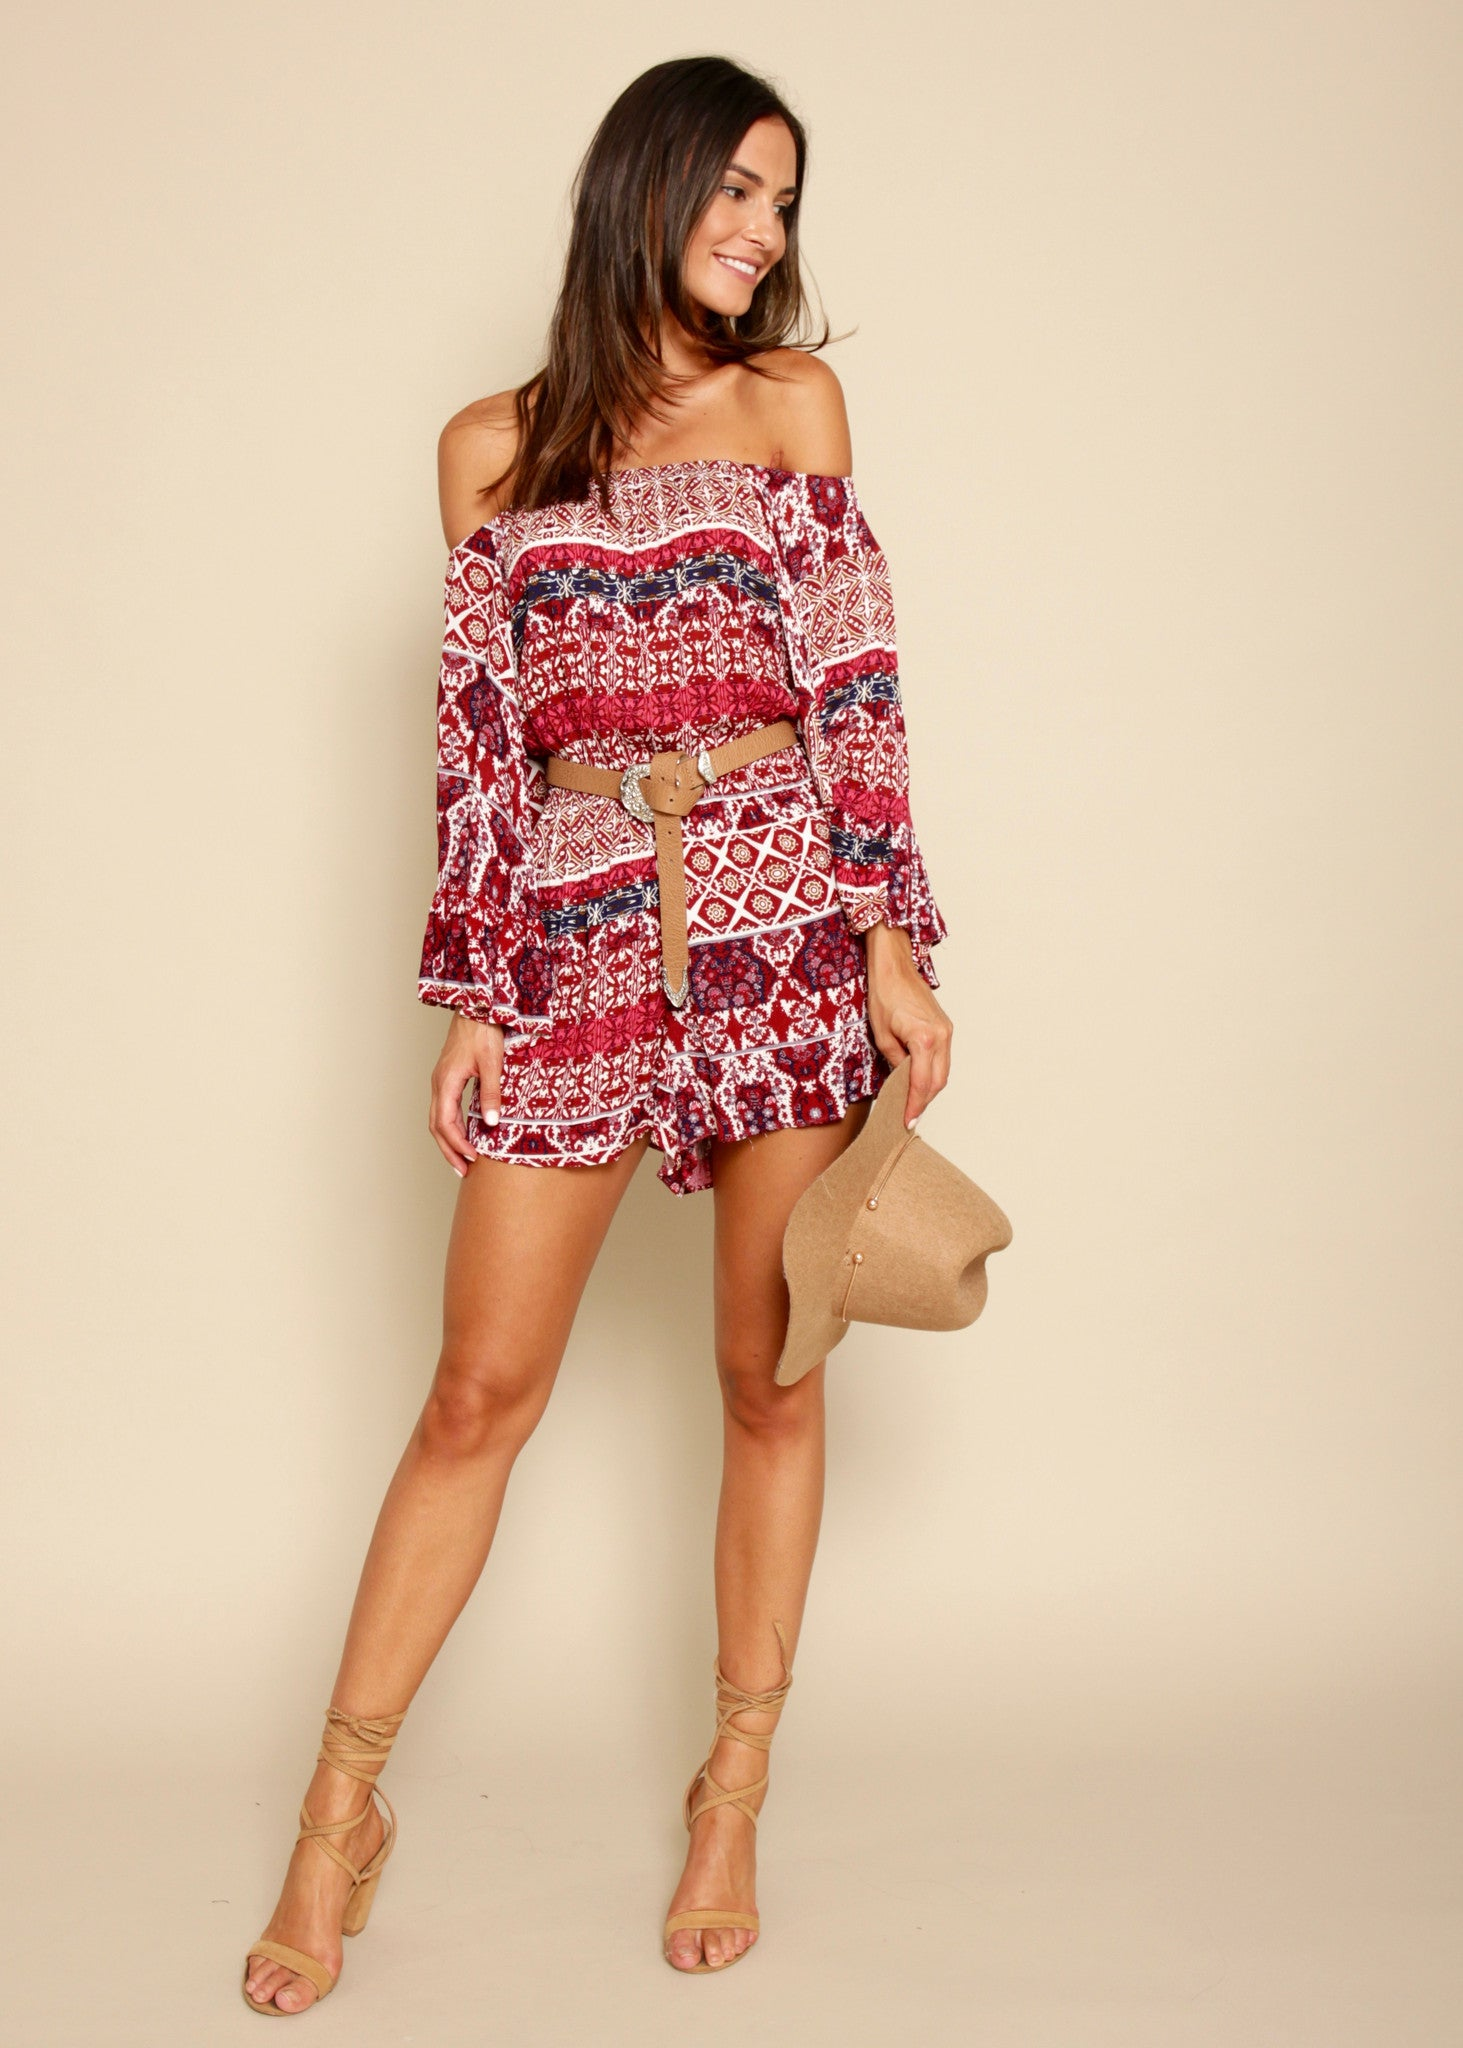 Arizona Skies Off Shoulder Playsuit - Red Desert